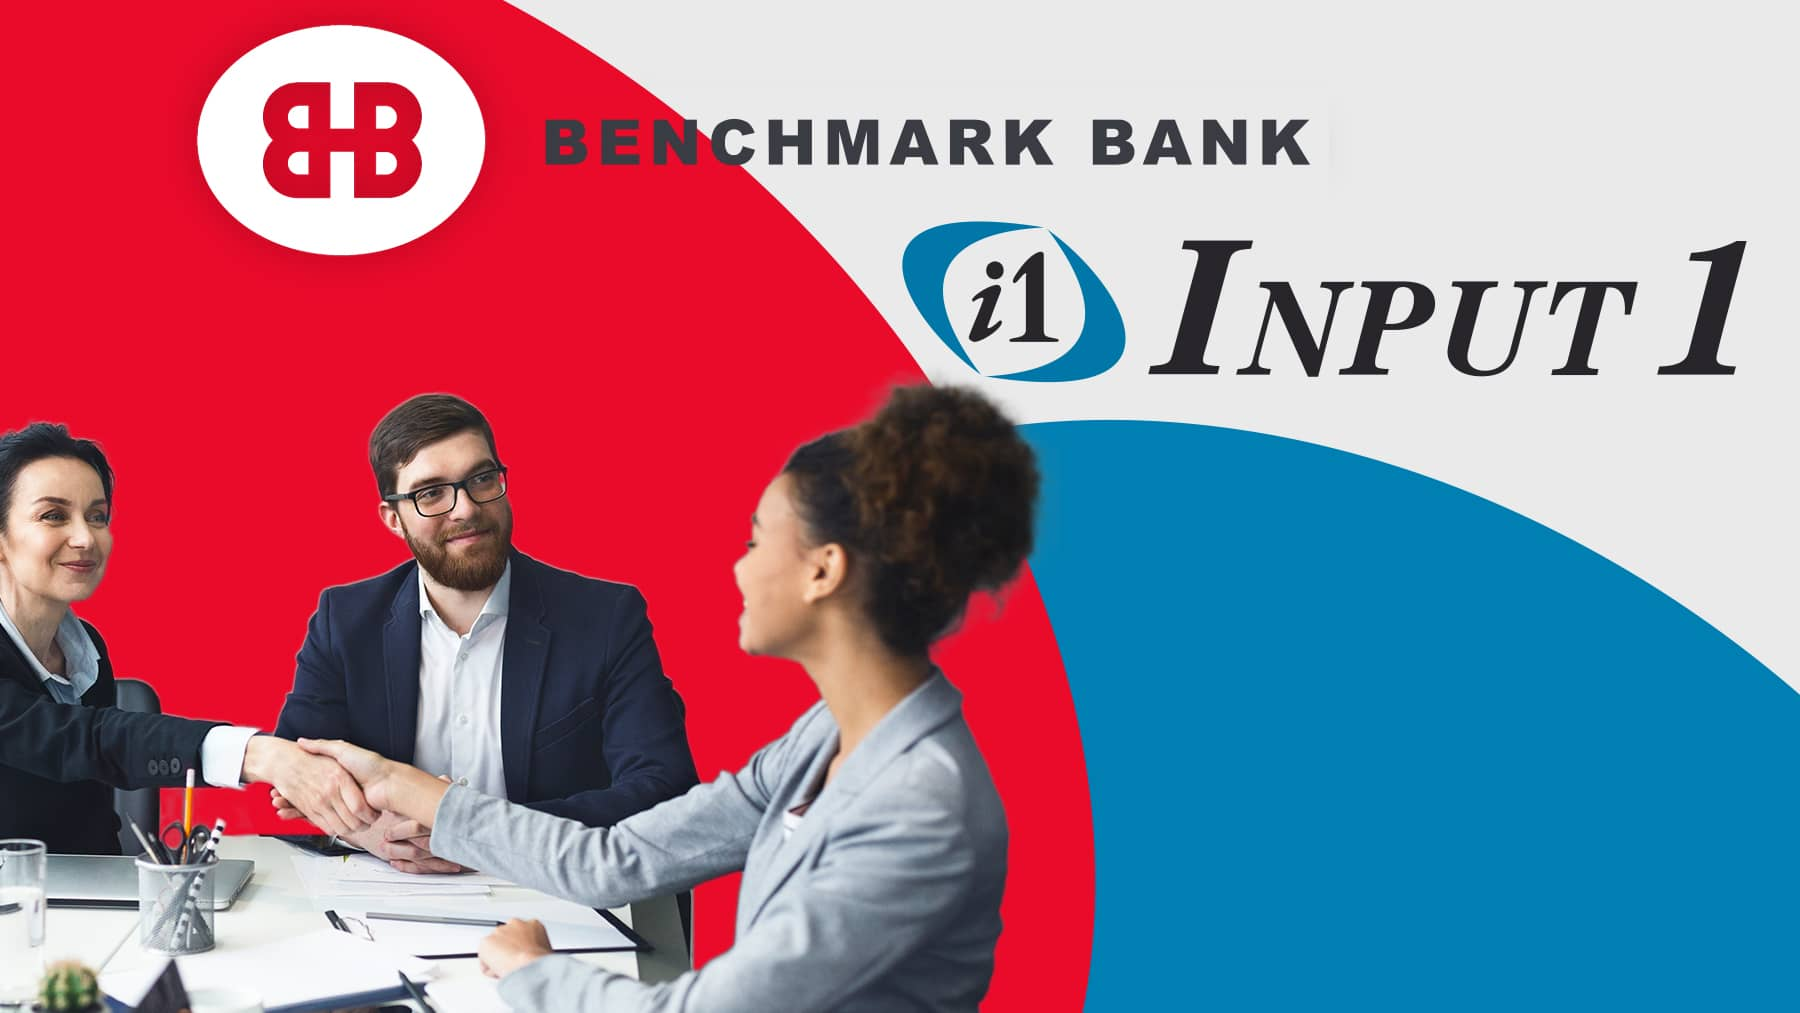 Benchmark Bank chooses Input 1 as technology provider to launch its new division, Benchmark Premium Finance